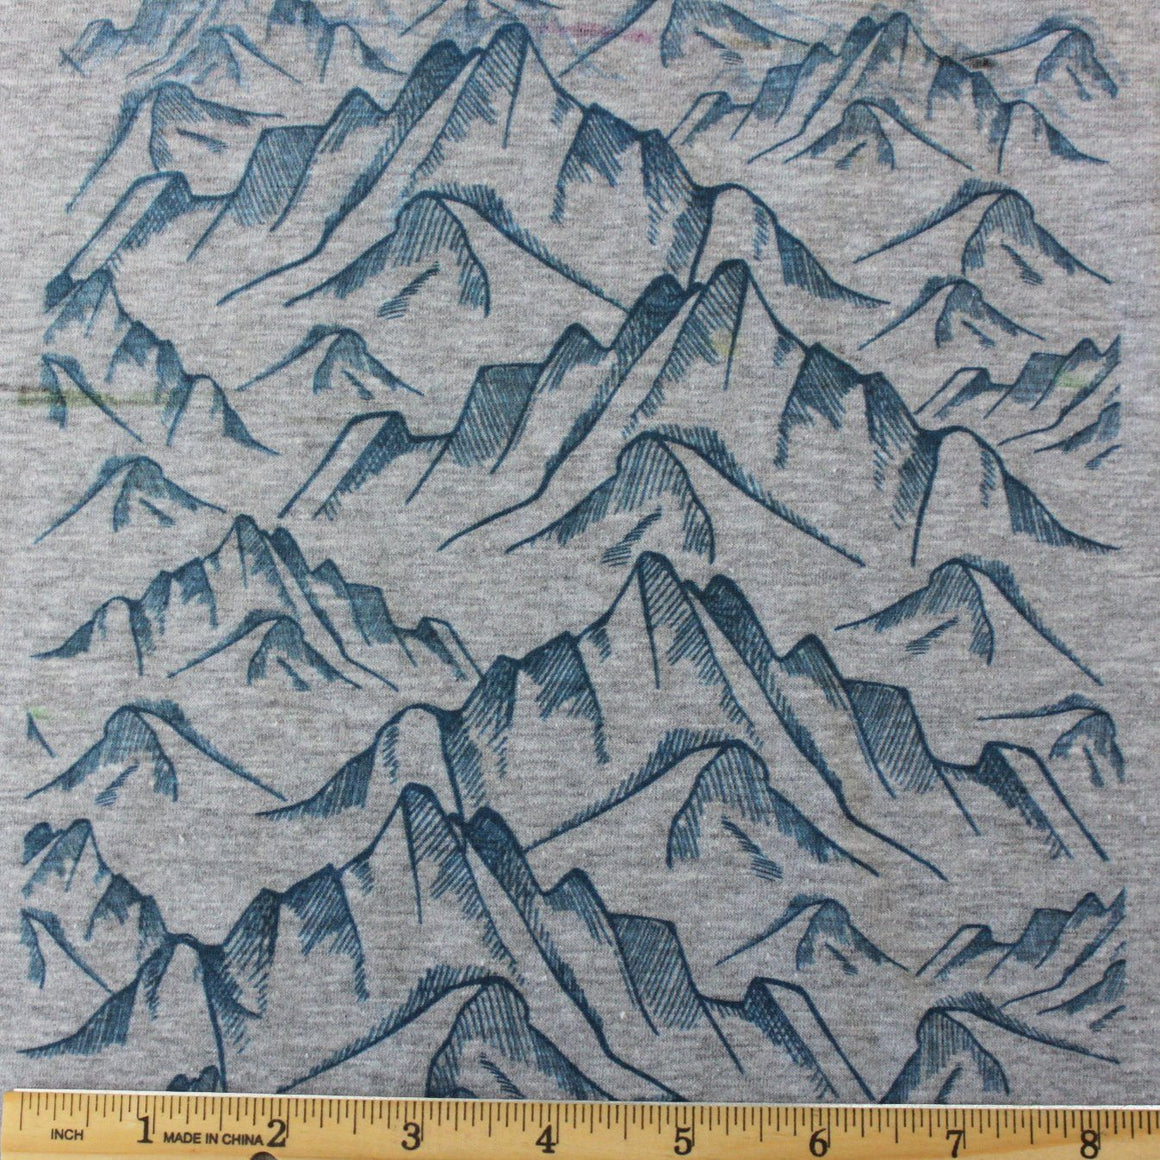 Teal Geometric Mountains on Grey 4 Way Stretch Jersey Knit Fabric, Retro Greys for Club Fabrics